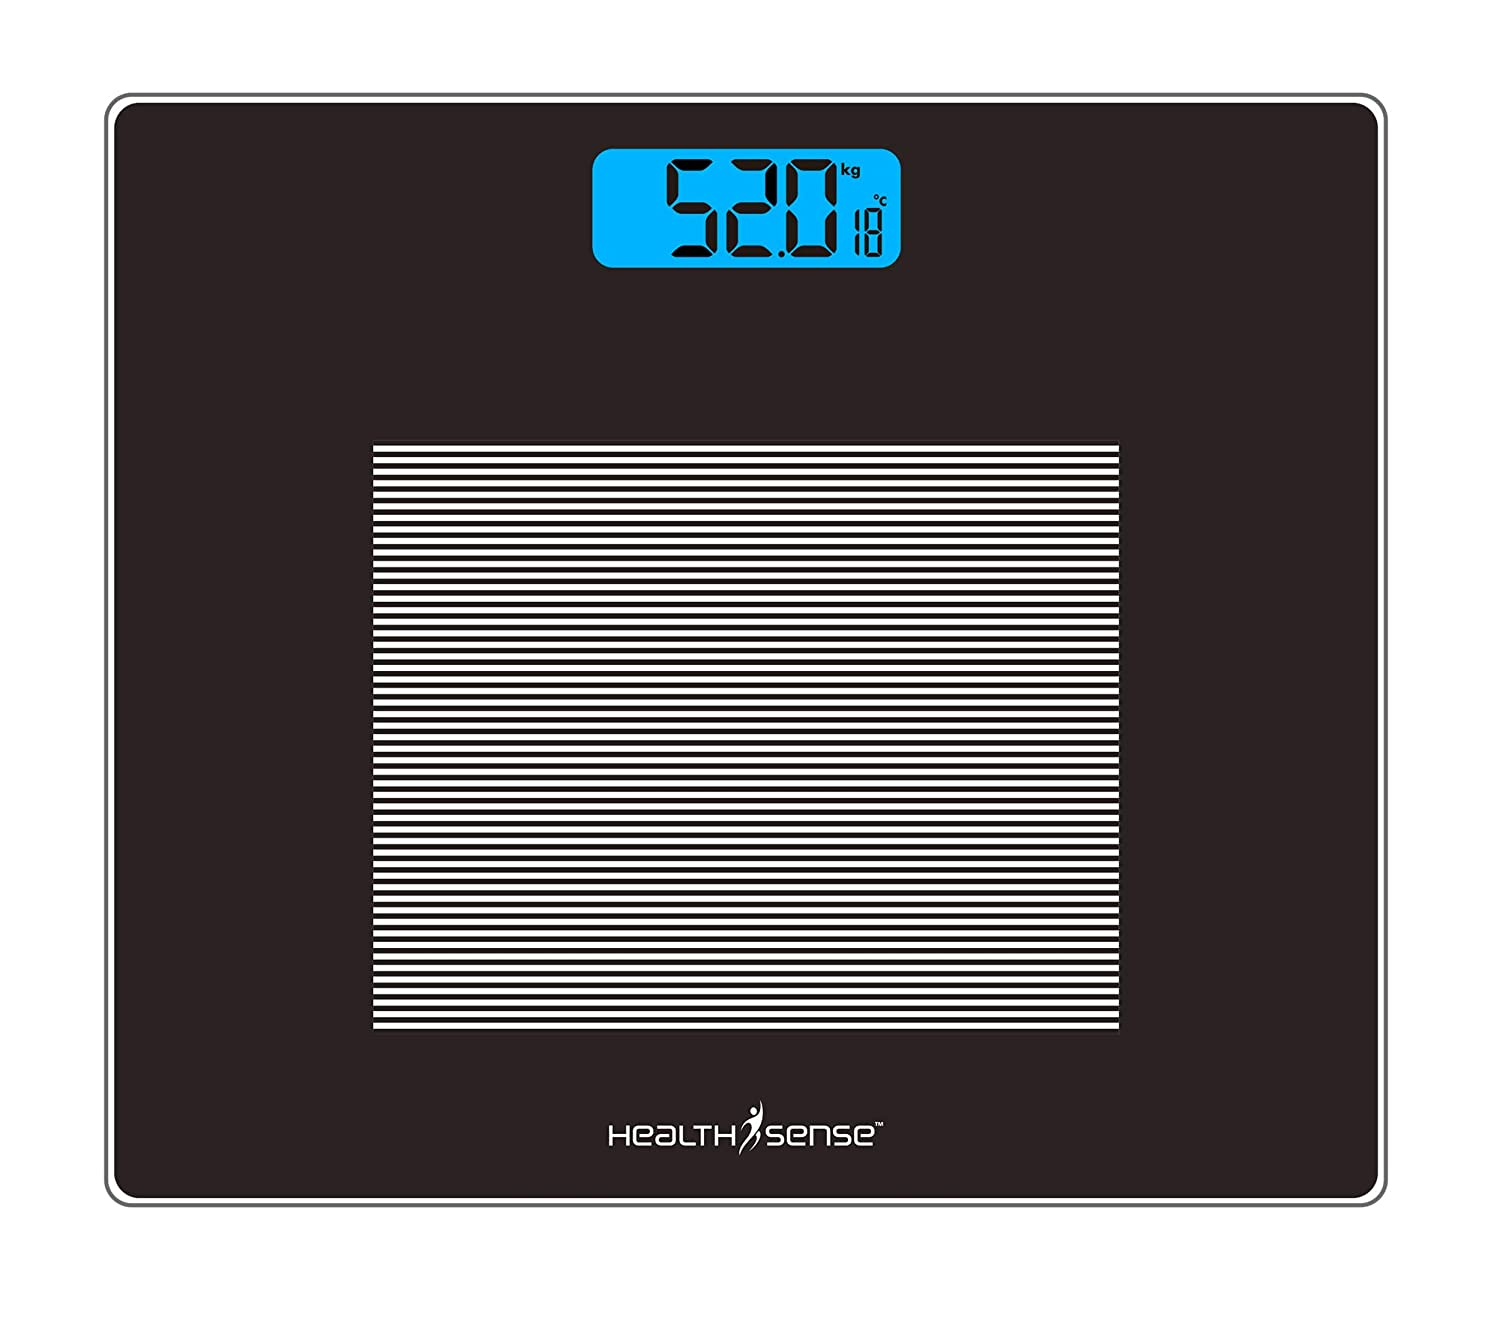 Healthsense Dura-Glass Digital Personal Body Weighing Scale